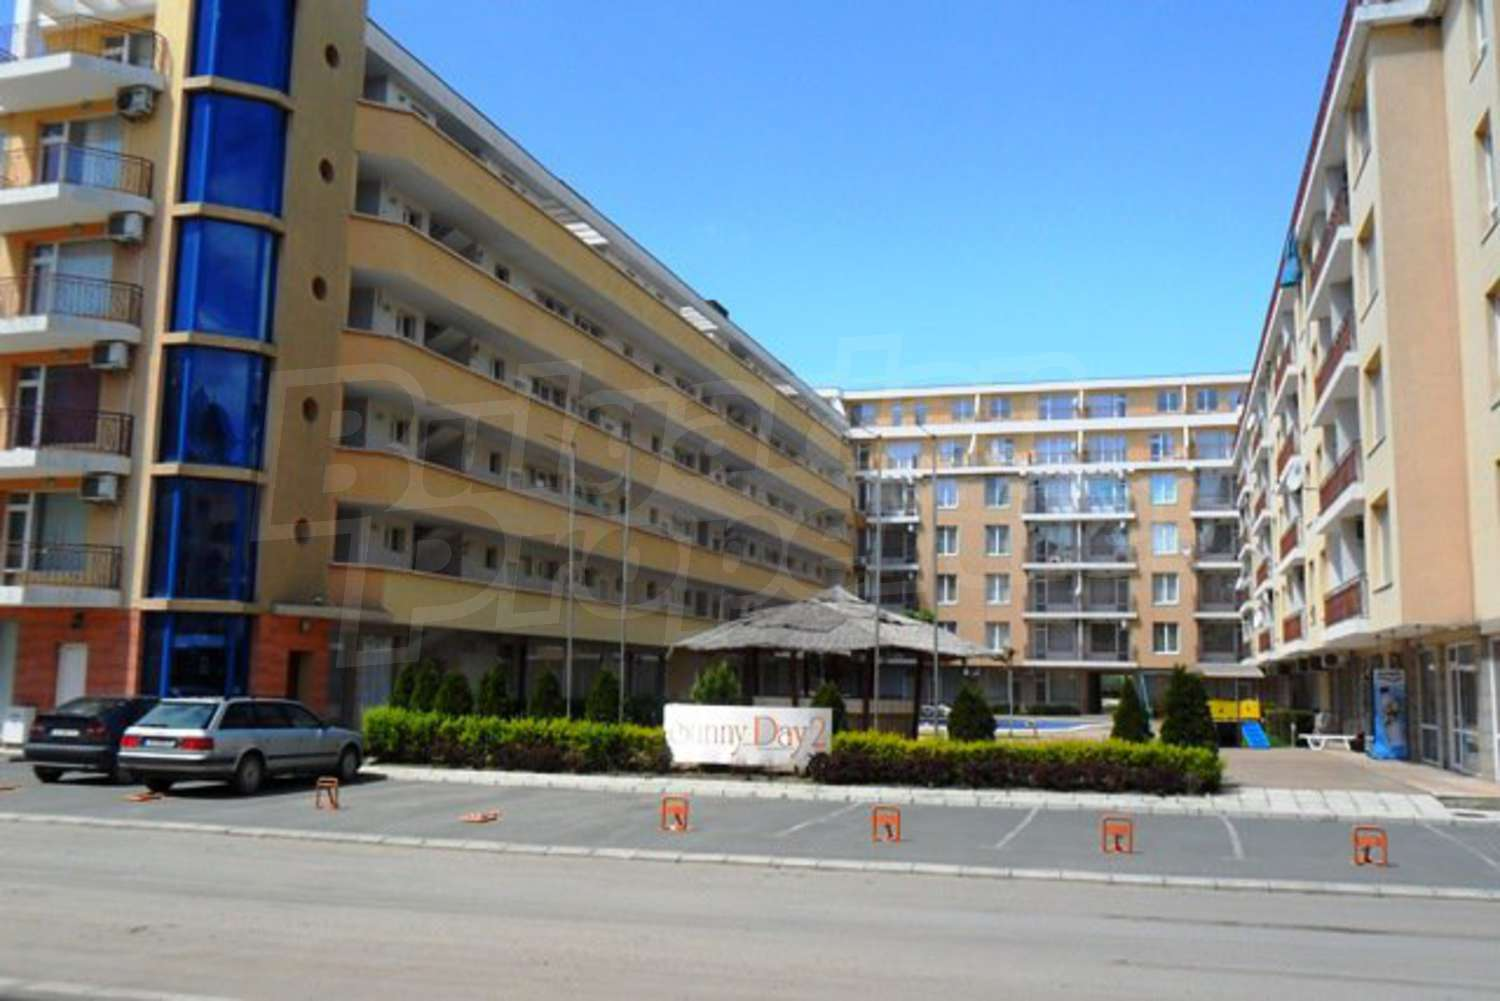 Fully Furnished 2 Bedroom Apartment In Sunny Day Complex